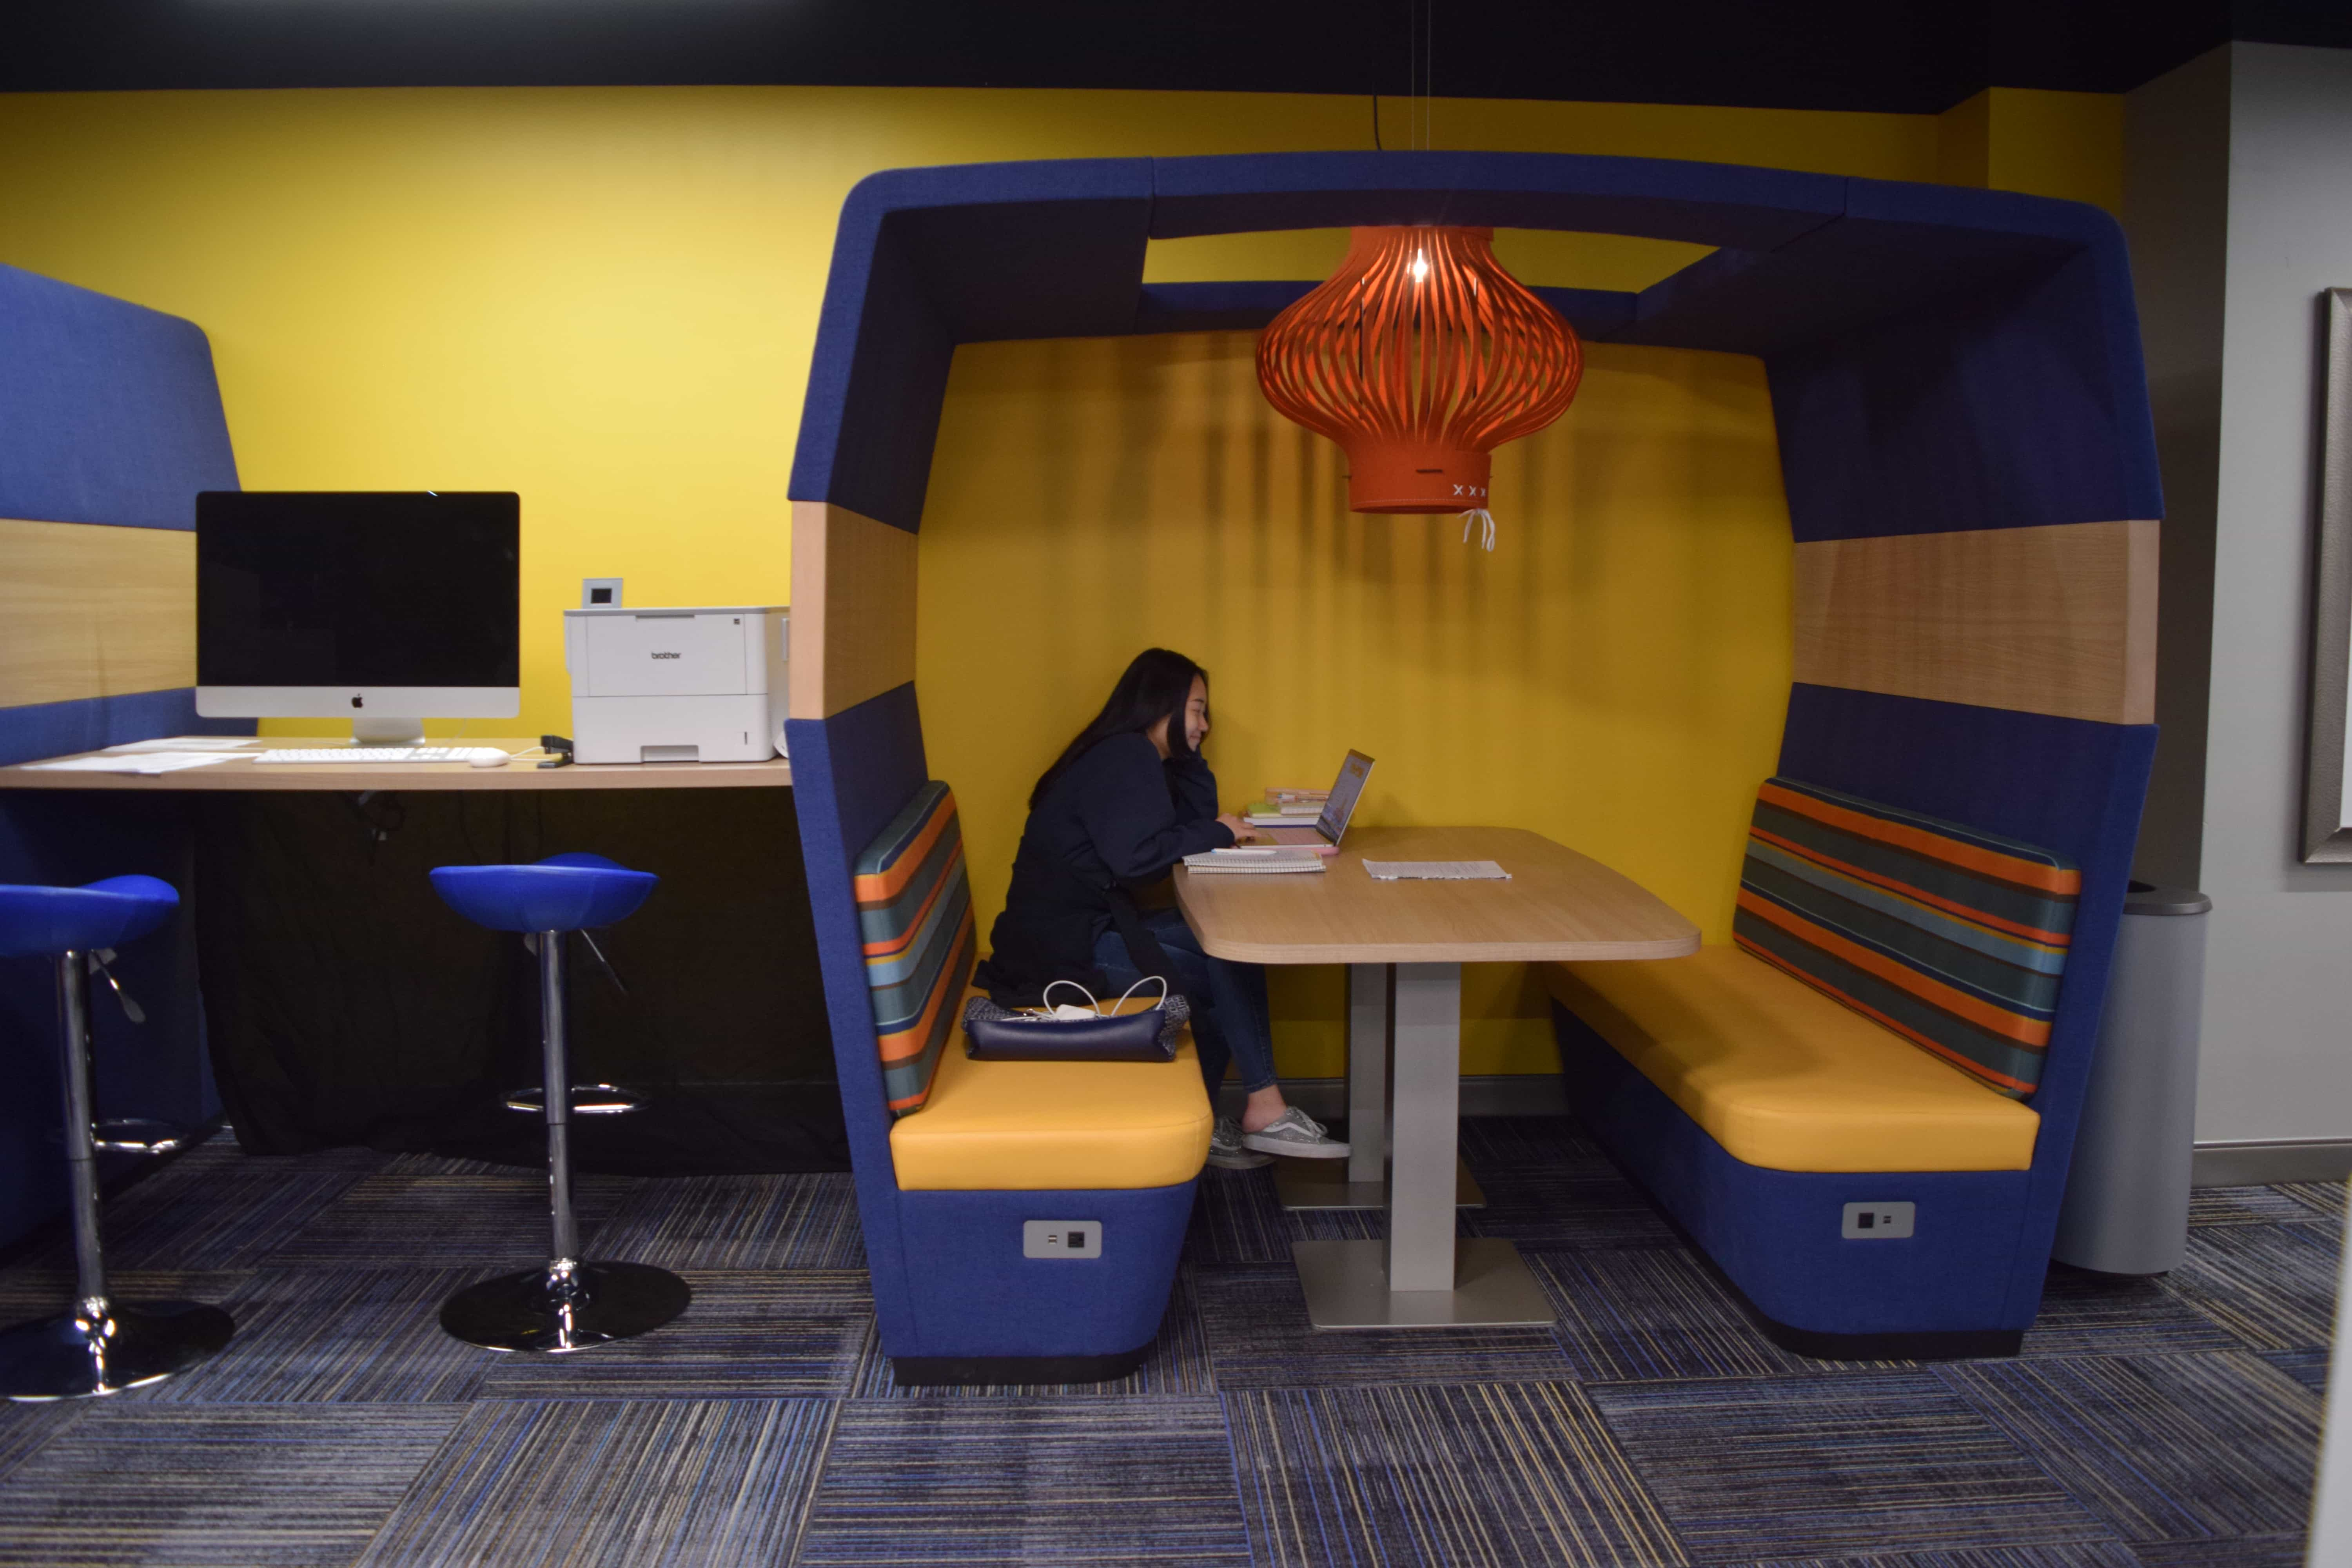 A female student sits in a covered booth with an orange and blue color-scheme.